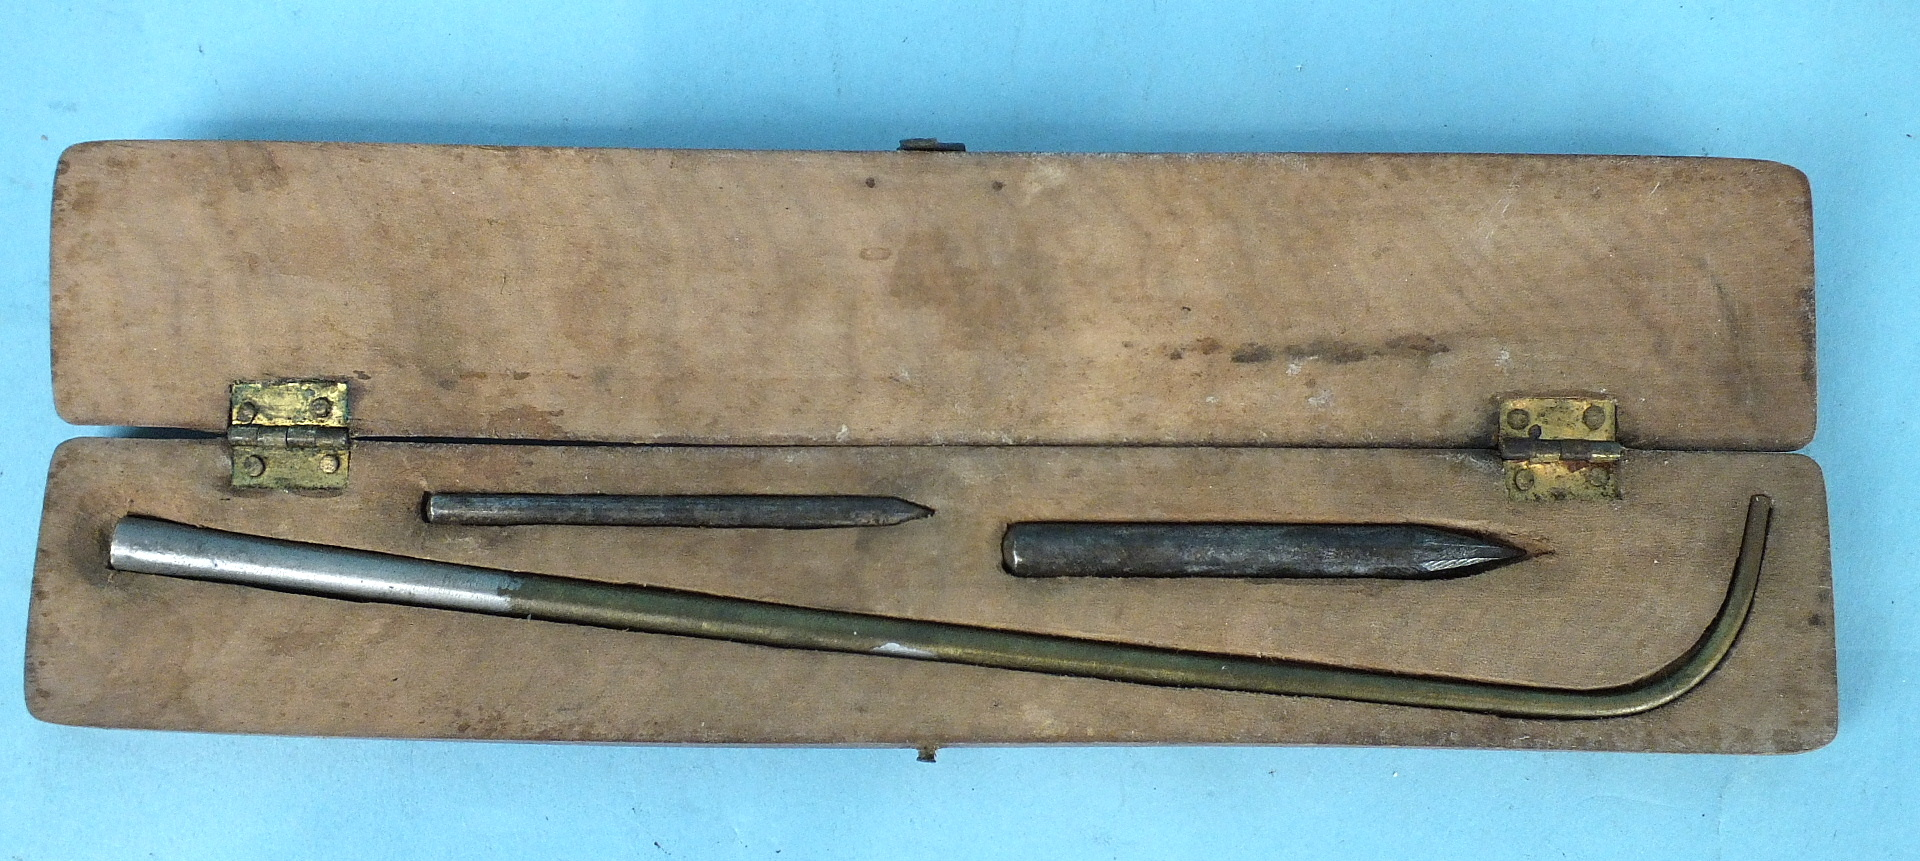 Lot 181 - An early 20th century egg blowing set comprising two awls and a curved metal tube, in fitted